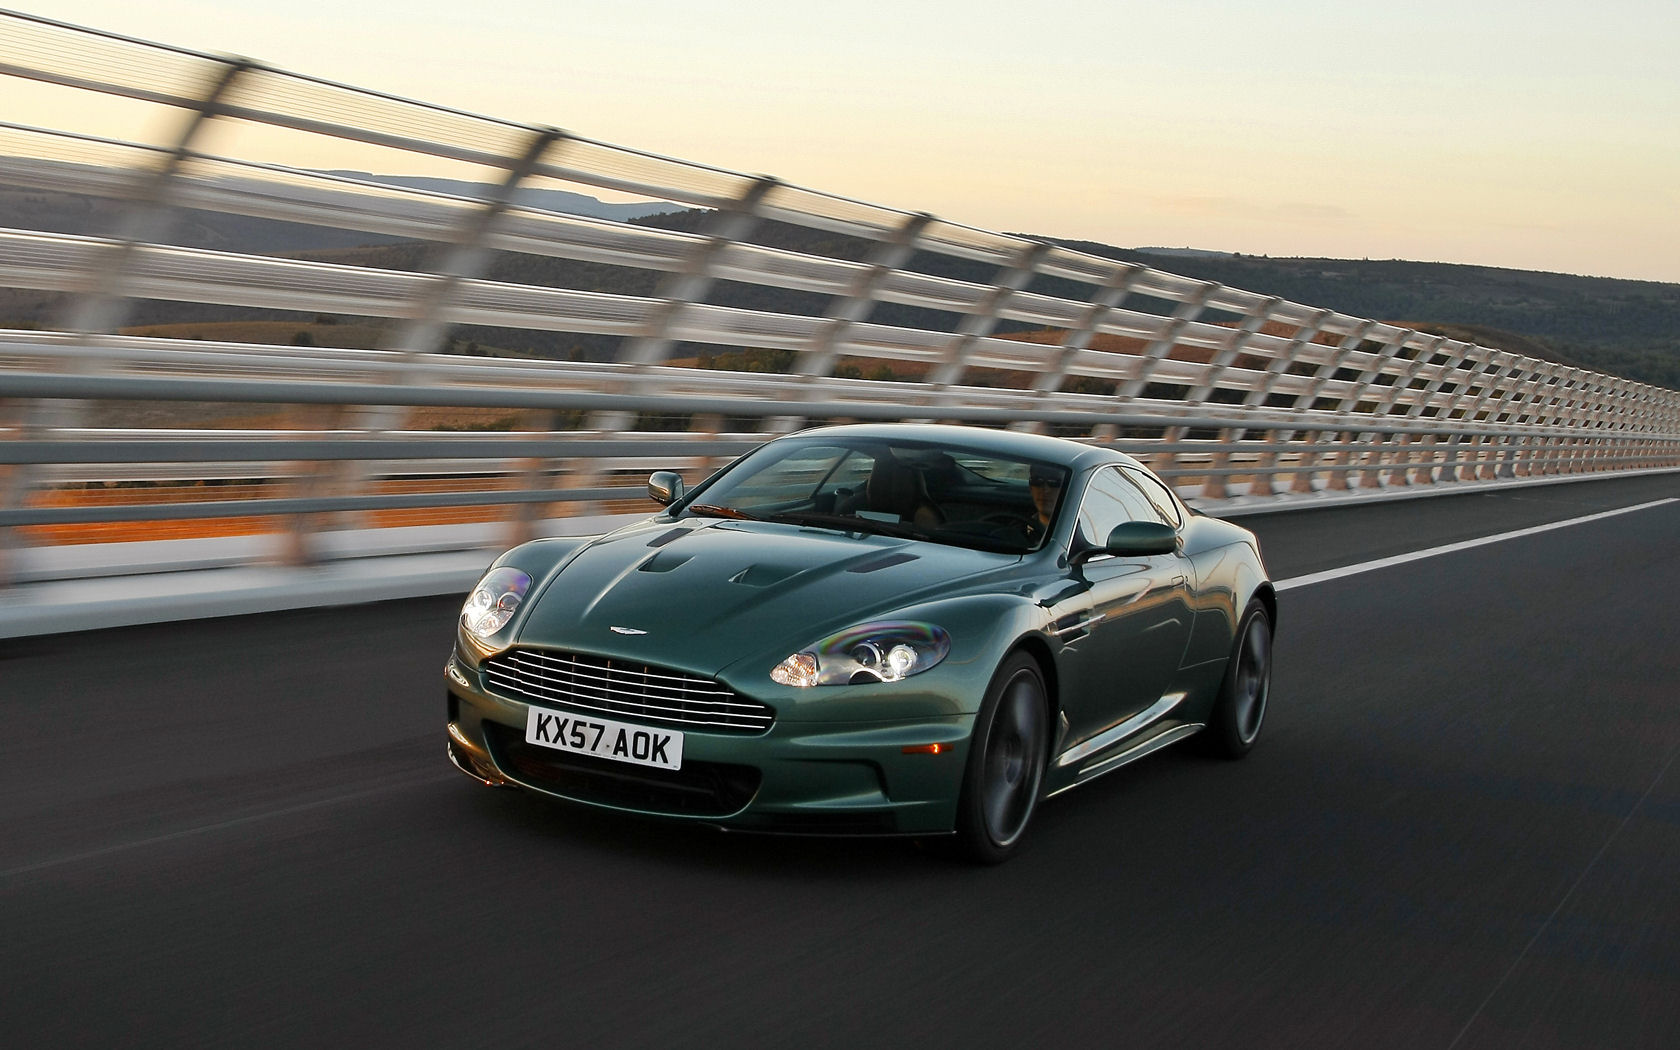 aston martin dbs v12 wallpaper - photo #22